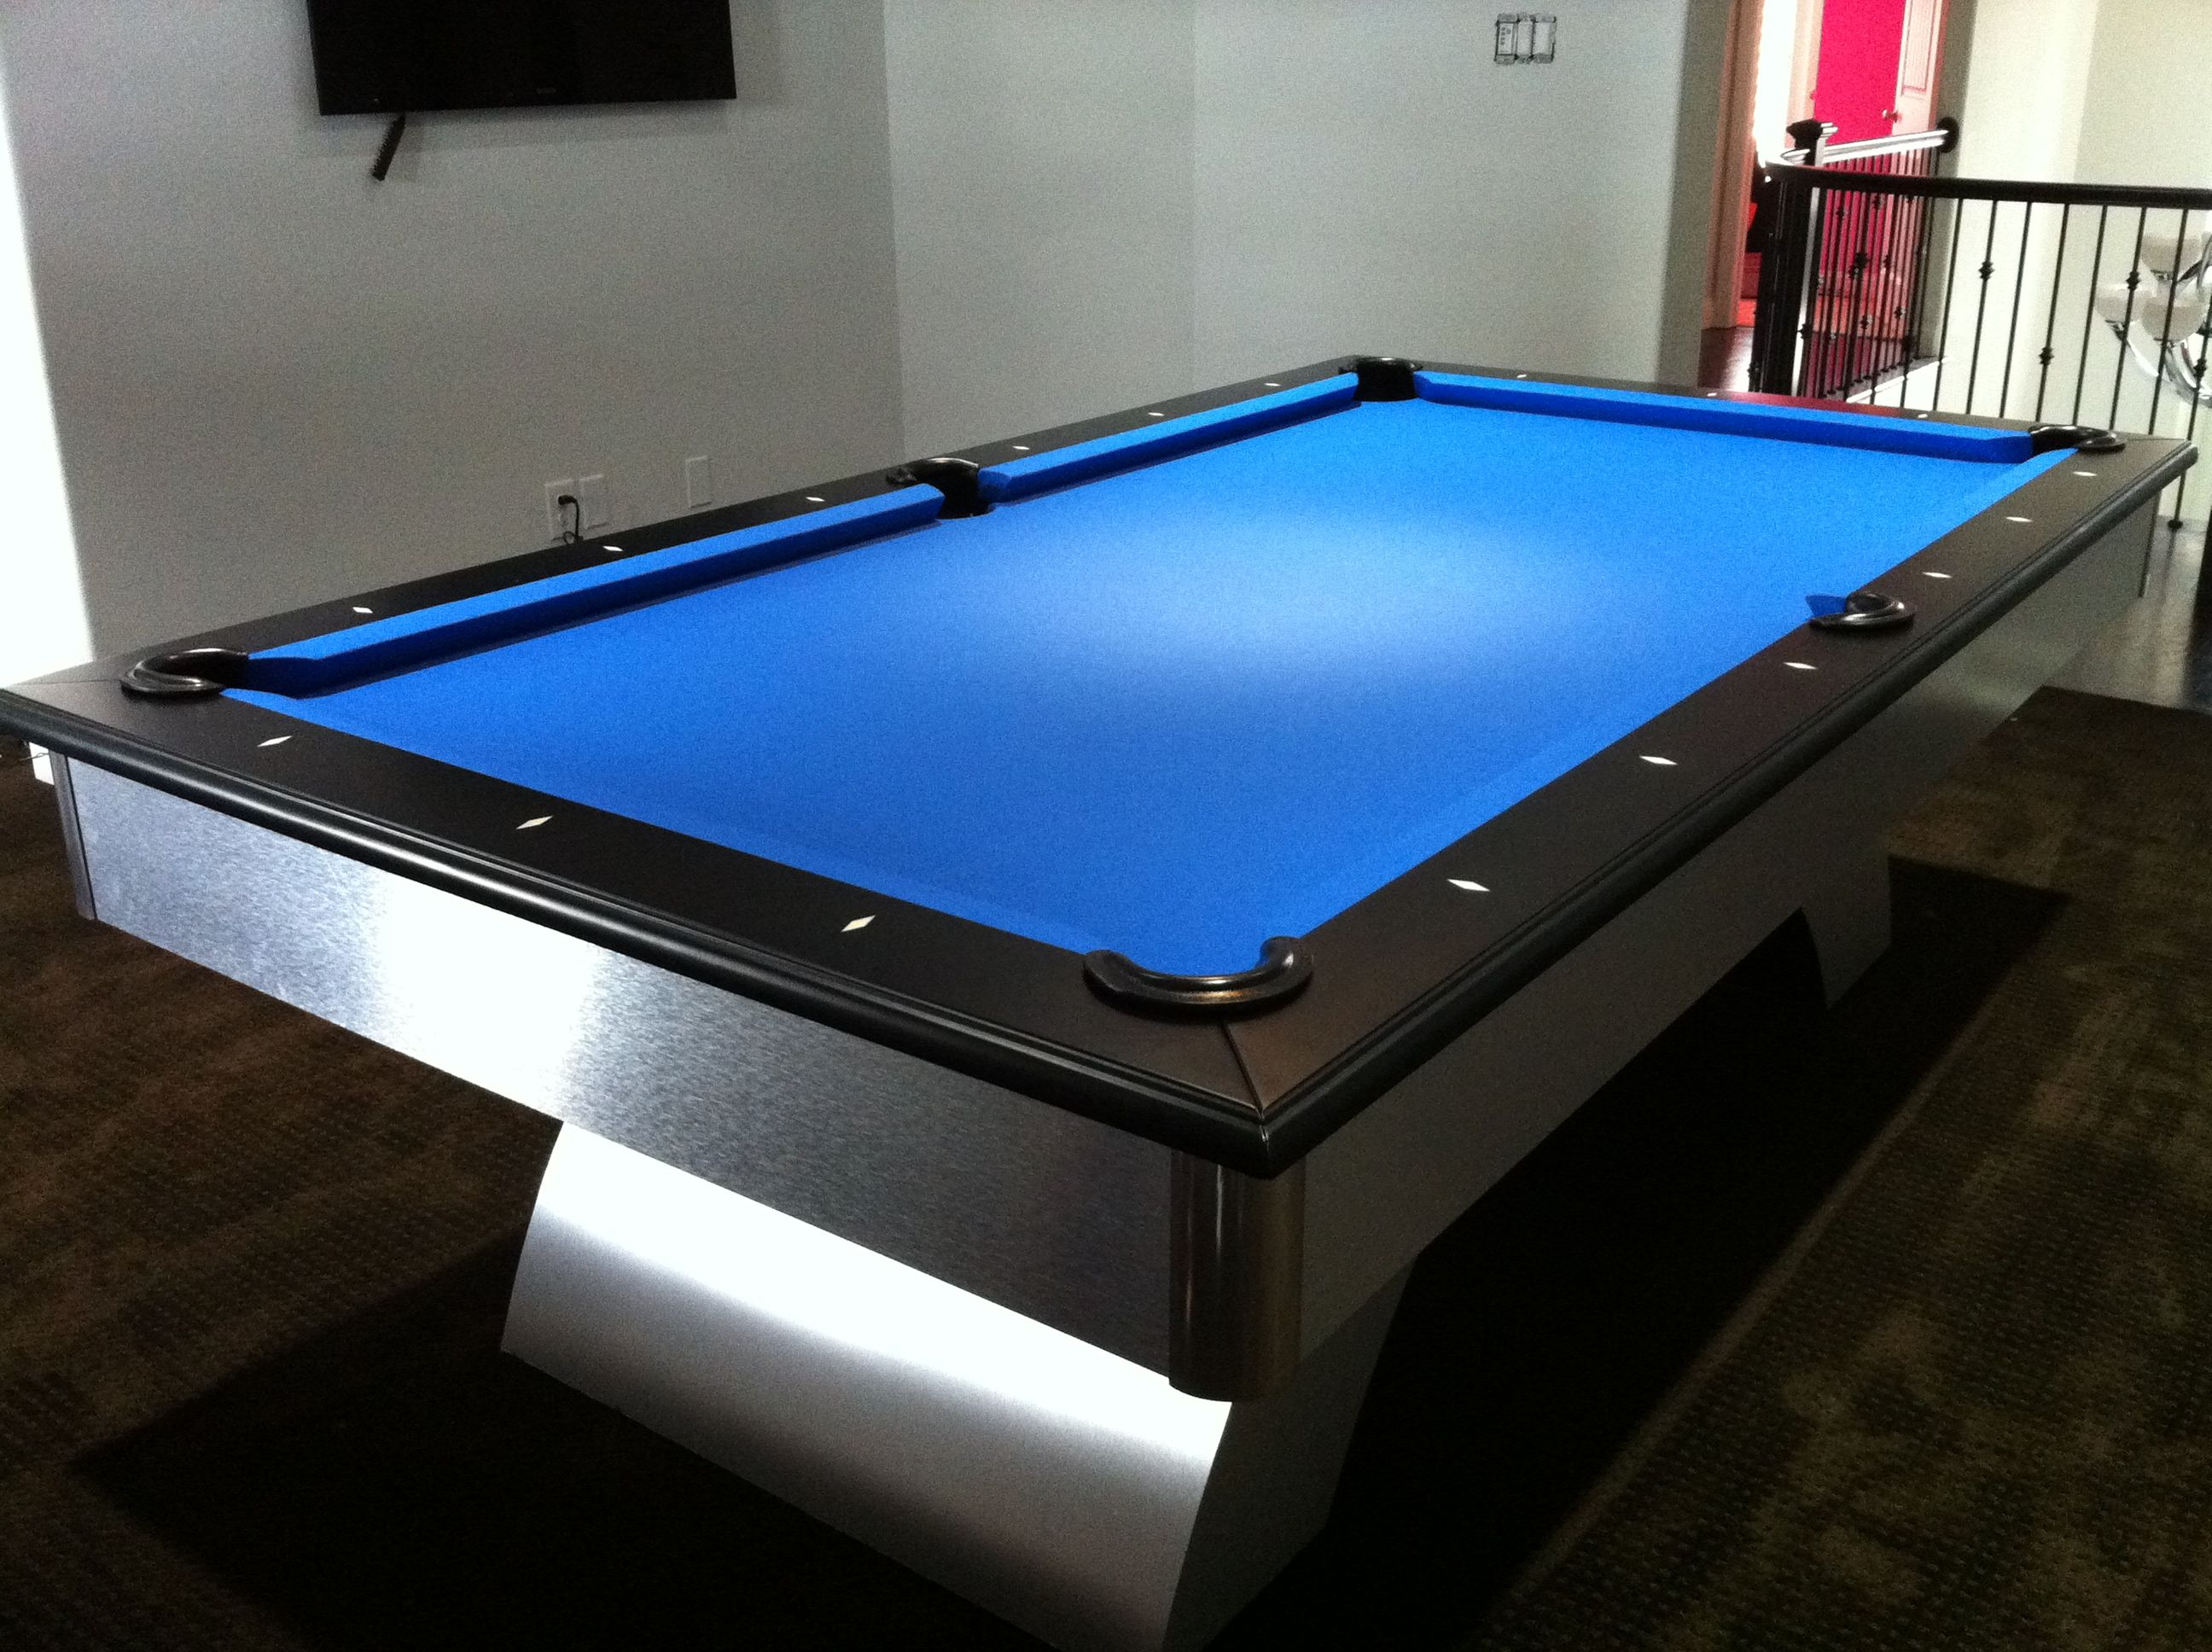 Delicieux Pool Tables 1 Inch Slate Pool Tables For Sale Sears Has Pool Tables To  Enjoy Time With Family And Friends Ping Pong Top American Heritage Richland  Billiard